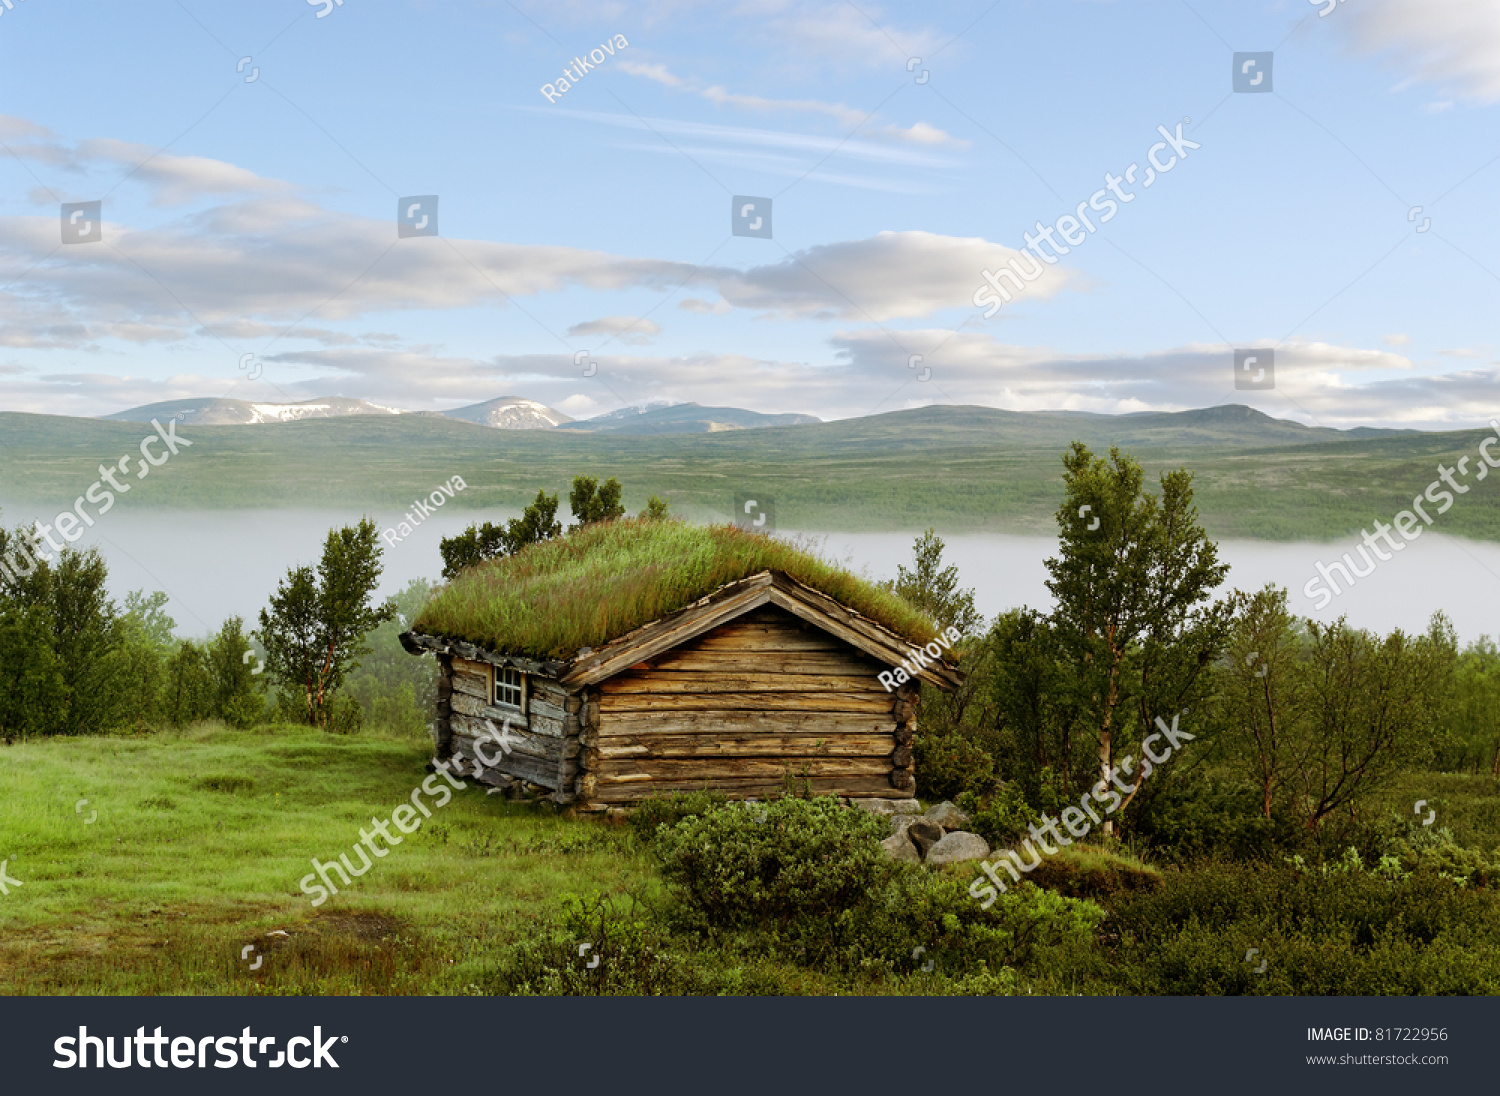 Small House On Hill Norway Mountains Stock Photo 81722956